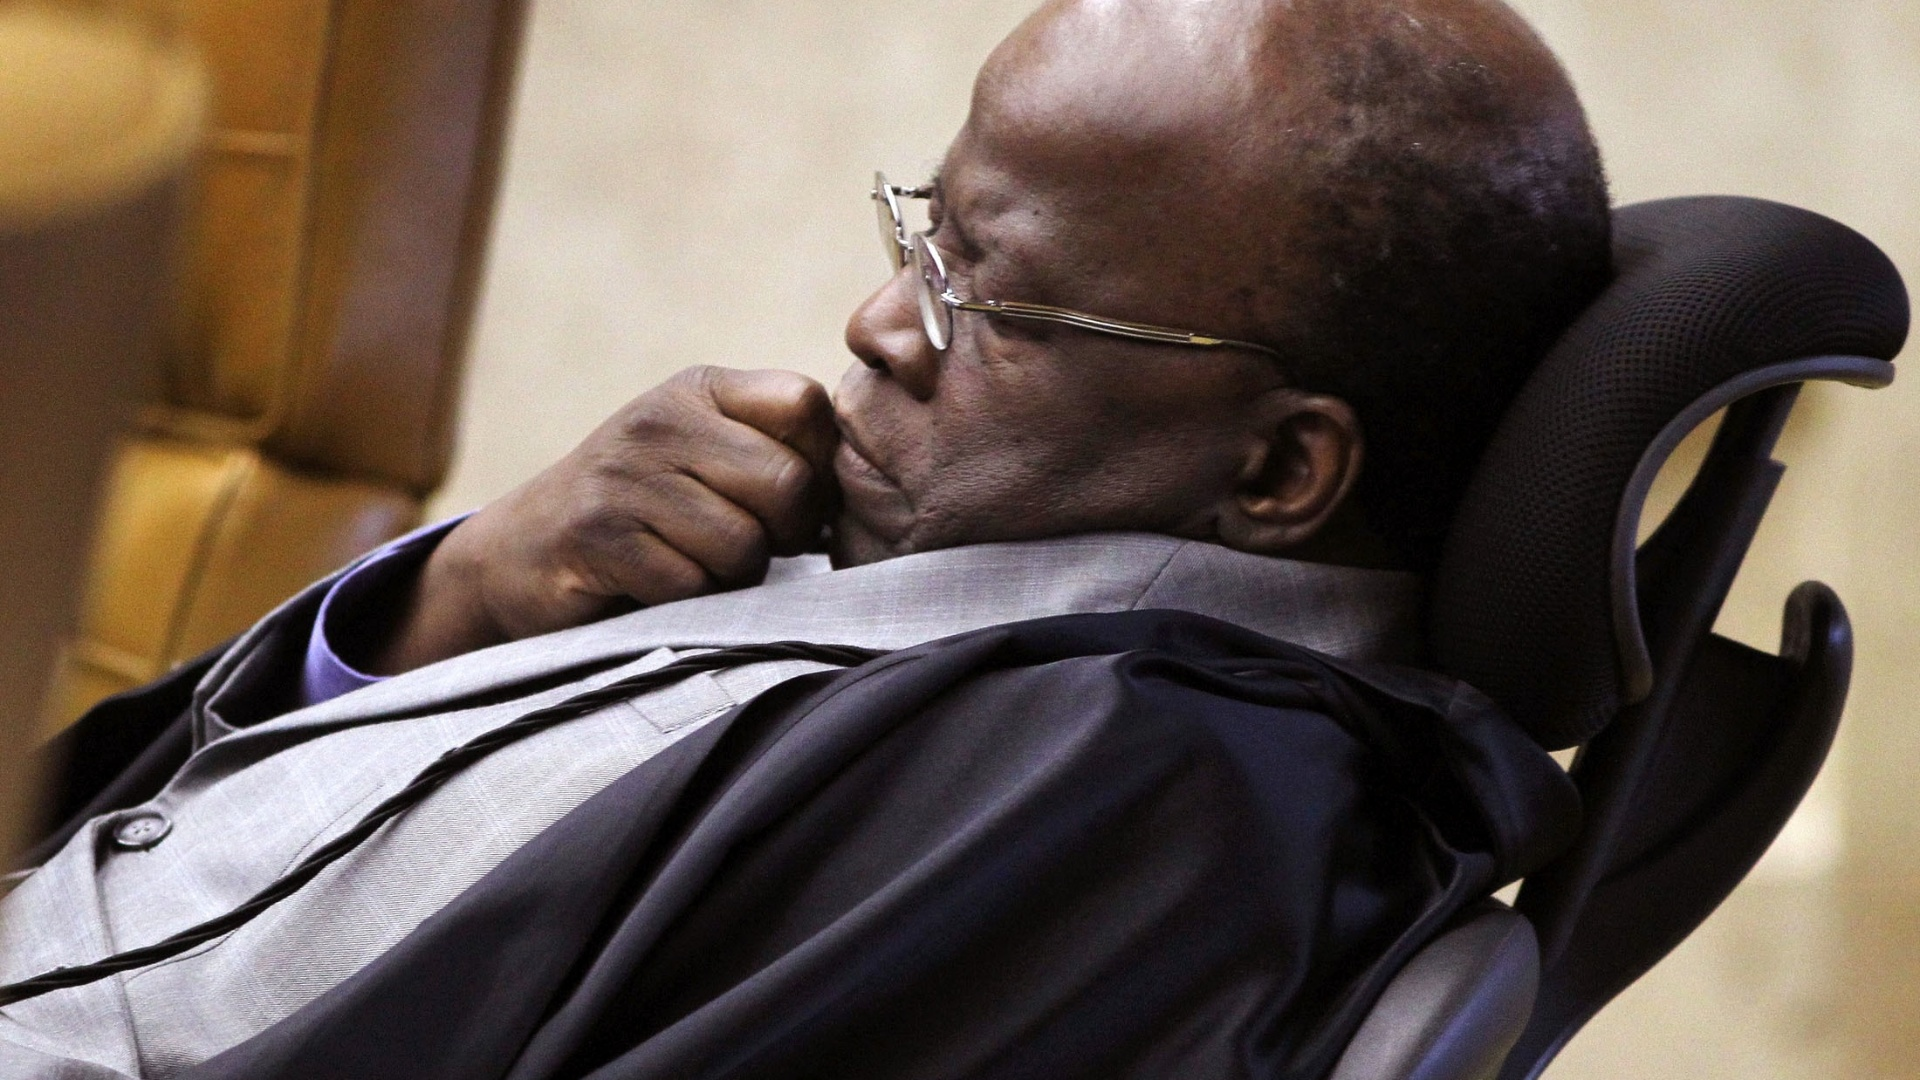 9.out.2012 - Ministro Joaquim Barbosa no plenário do Supremo Tribunal Federal (STF) durante julgamento do mensalão